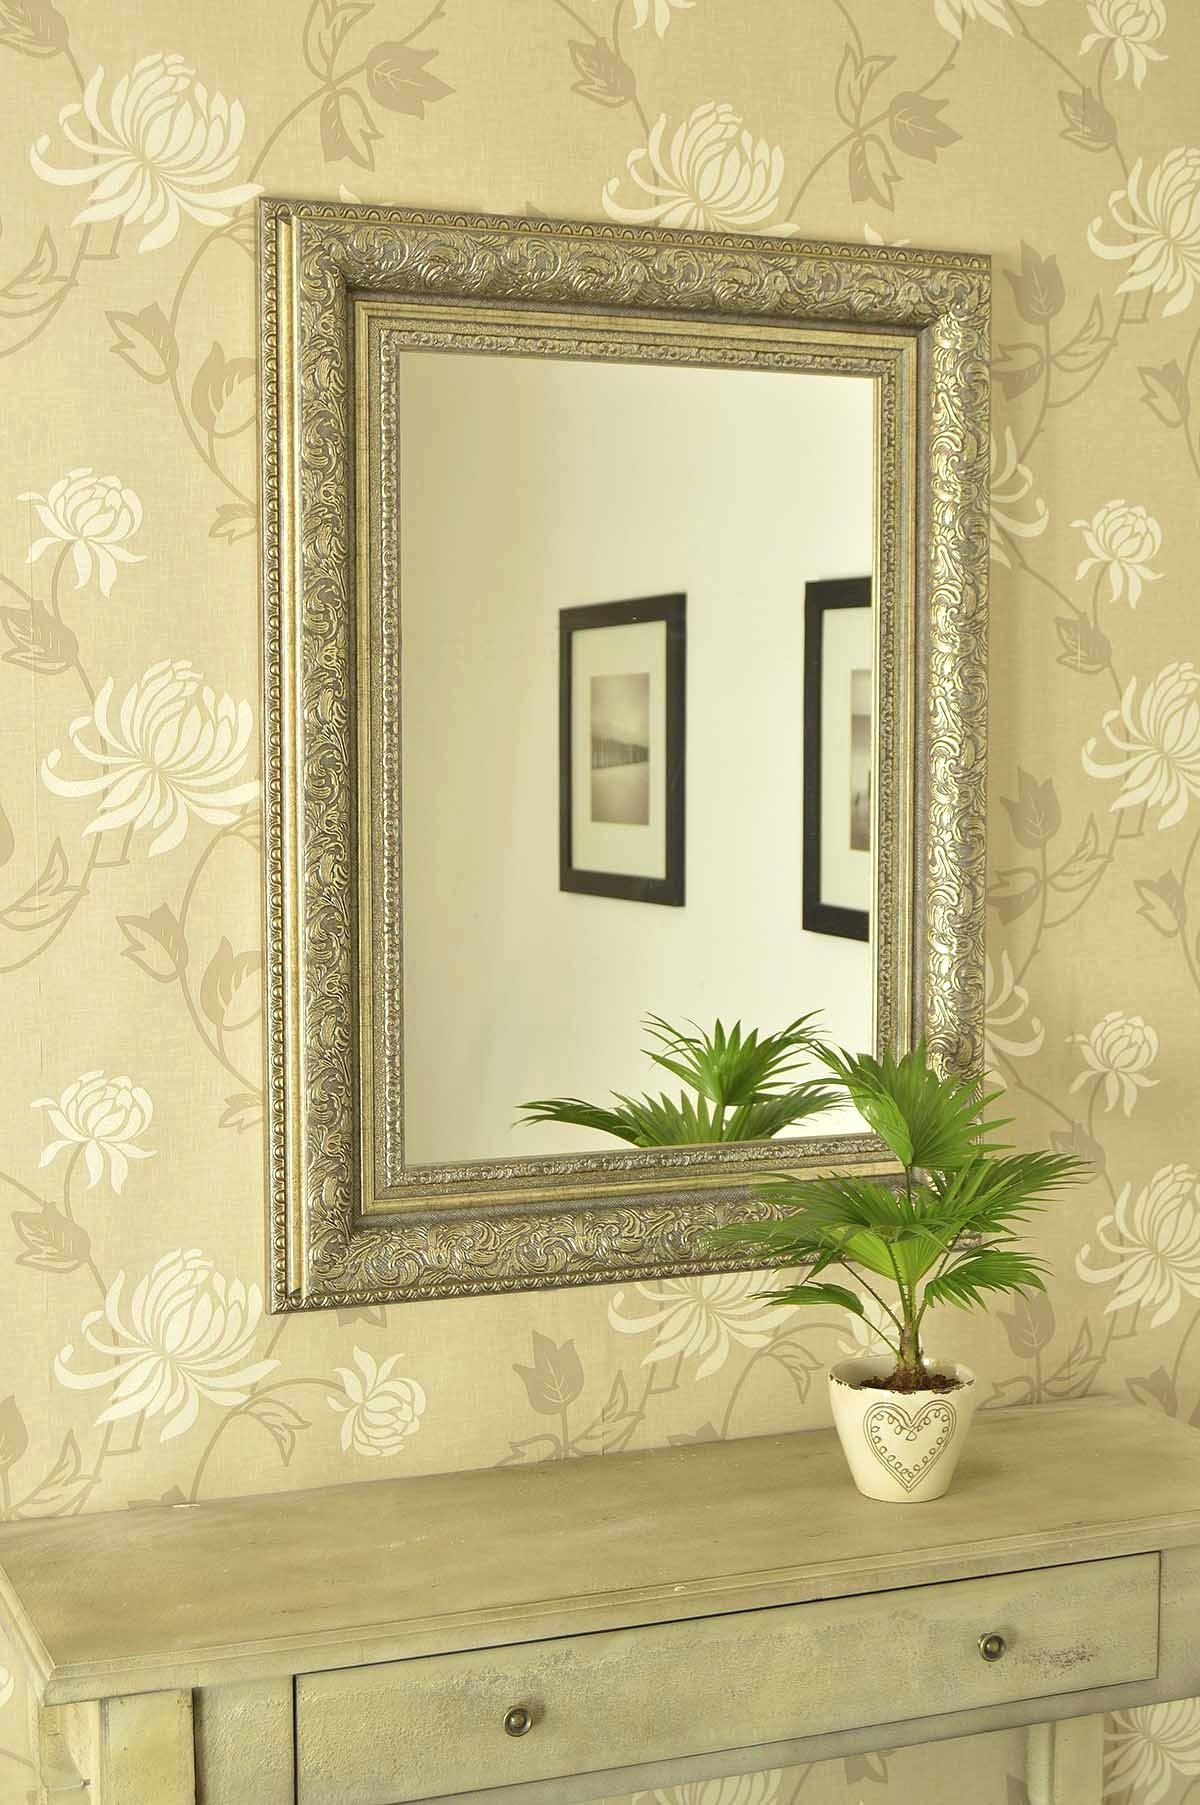 Wall Ideas : Contemporary Wall Mirrors Modern Wall Mirrors Sale In Contemporary Bathroom Wall Art (View 20 of 20)